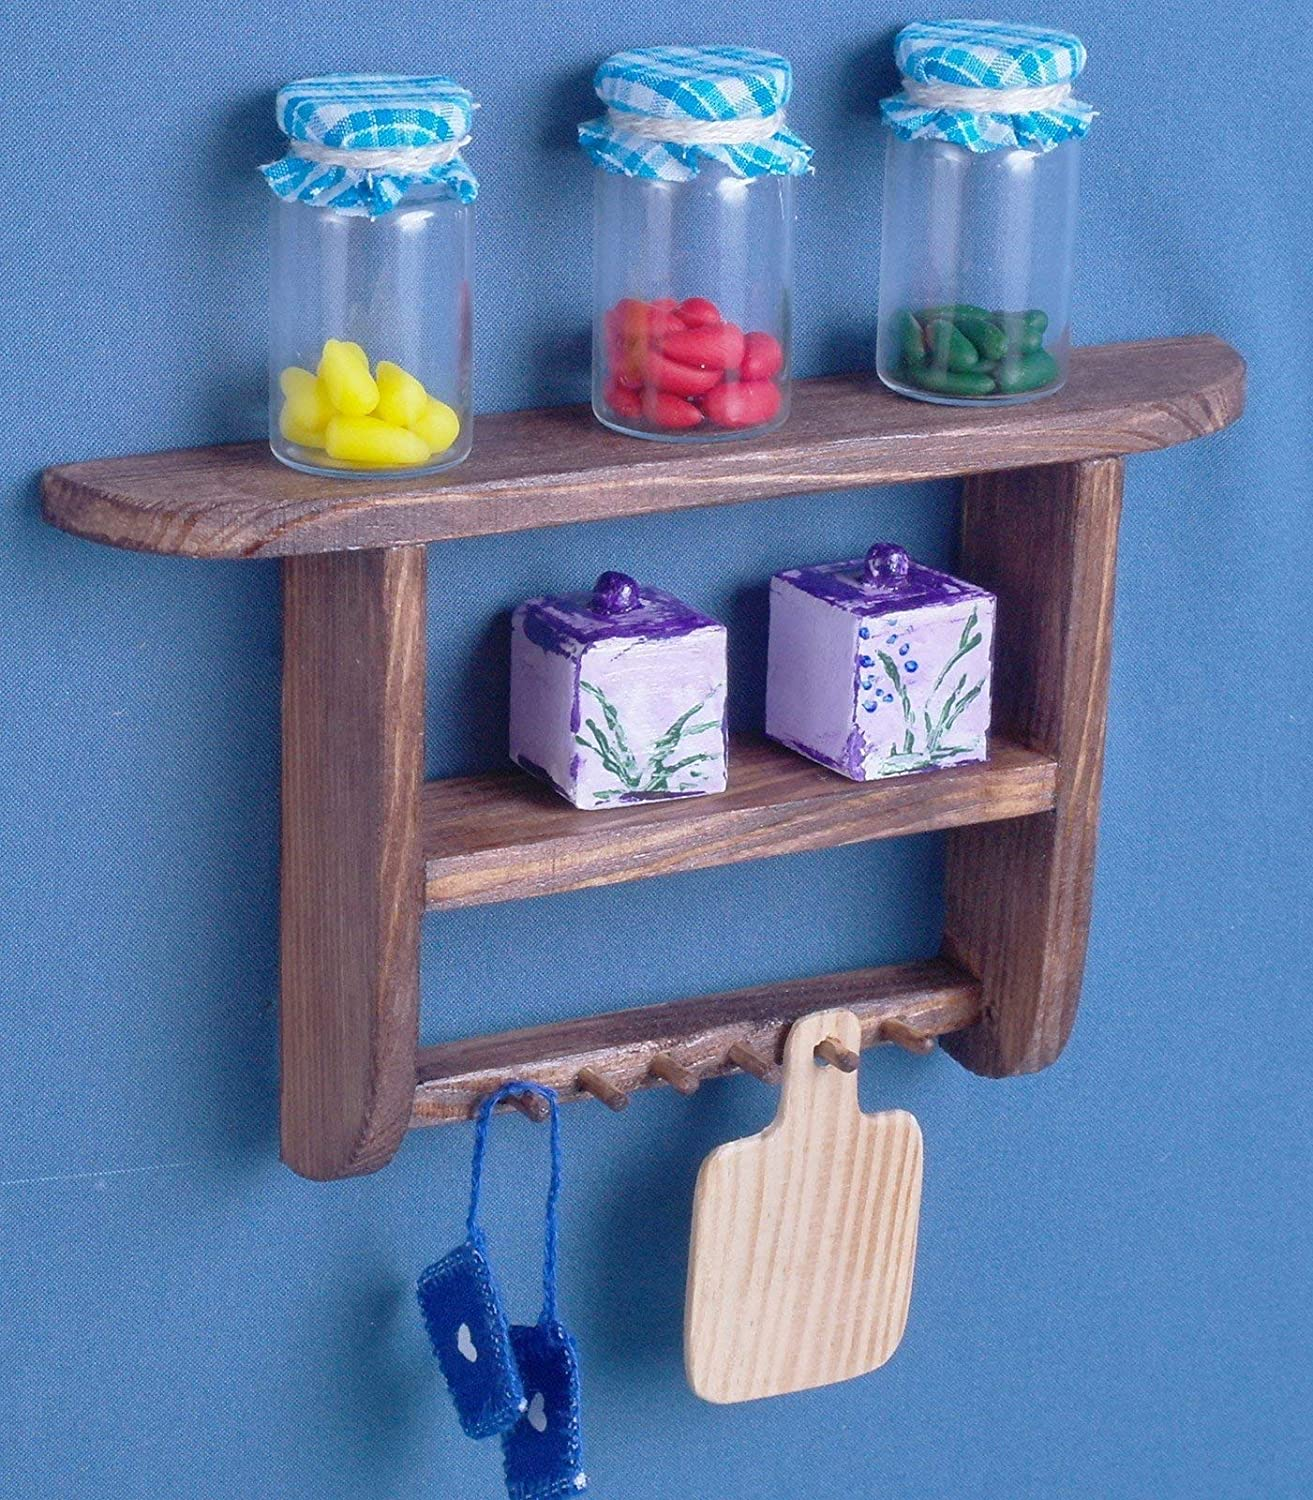 Kitchen wall shelf Dollhouse wooden furniture 1:6 scale dolls 12' for Barbie Blythe miniature accessories role-playing games bookshelf flowers shelf